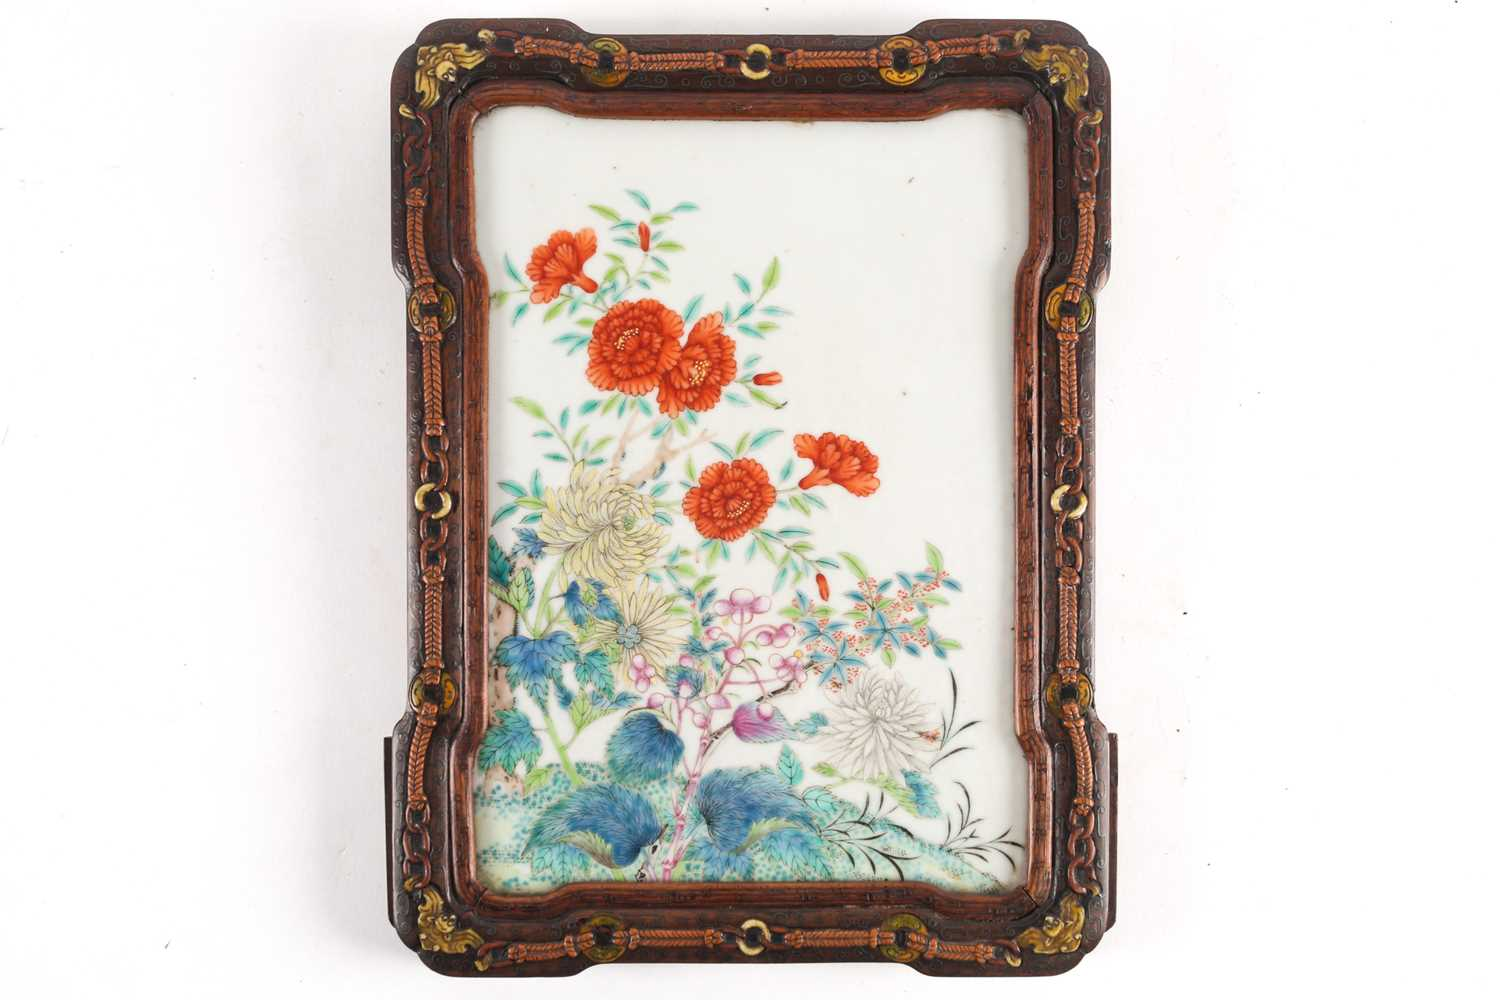 A Qing 19th century Chinese porcelain panel